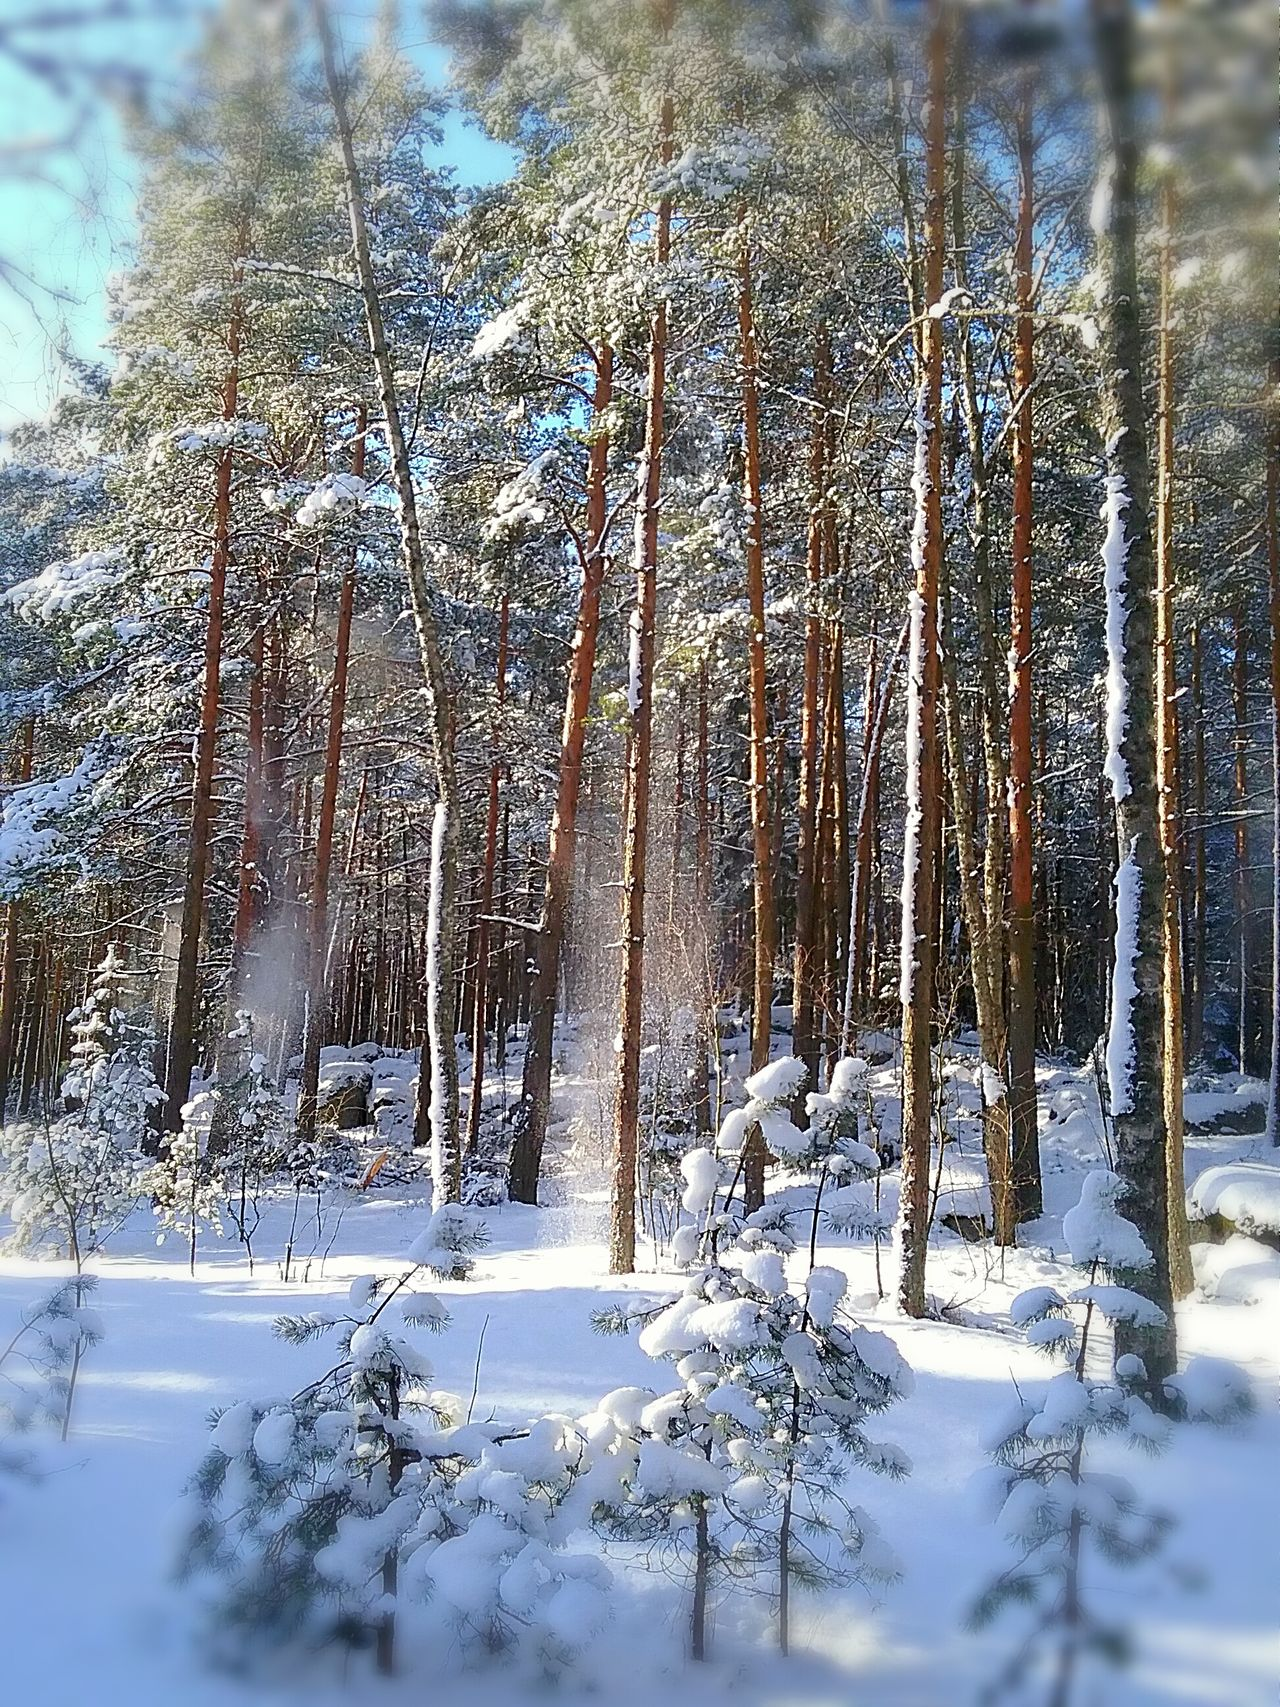 Snow Falling from a Tree . Sunny Morning In The Forest . Enjoying The Sun Springtime Snowy Forest Sun Shining Woods Outdoors Outdoor Photography Great Day  Strolling Around Walking In The Woods Nature Photography Naturelovers Snowy Landscape Selective Focus Photography In Motion Finland